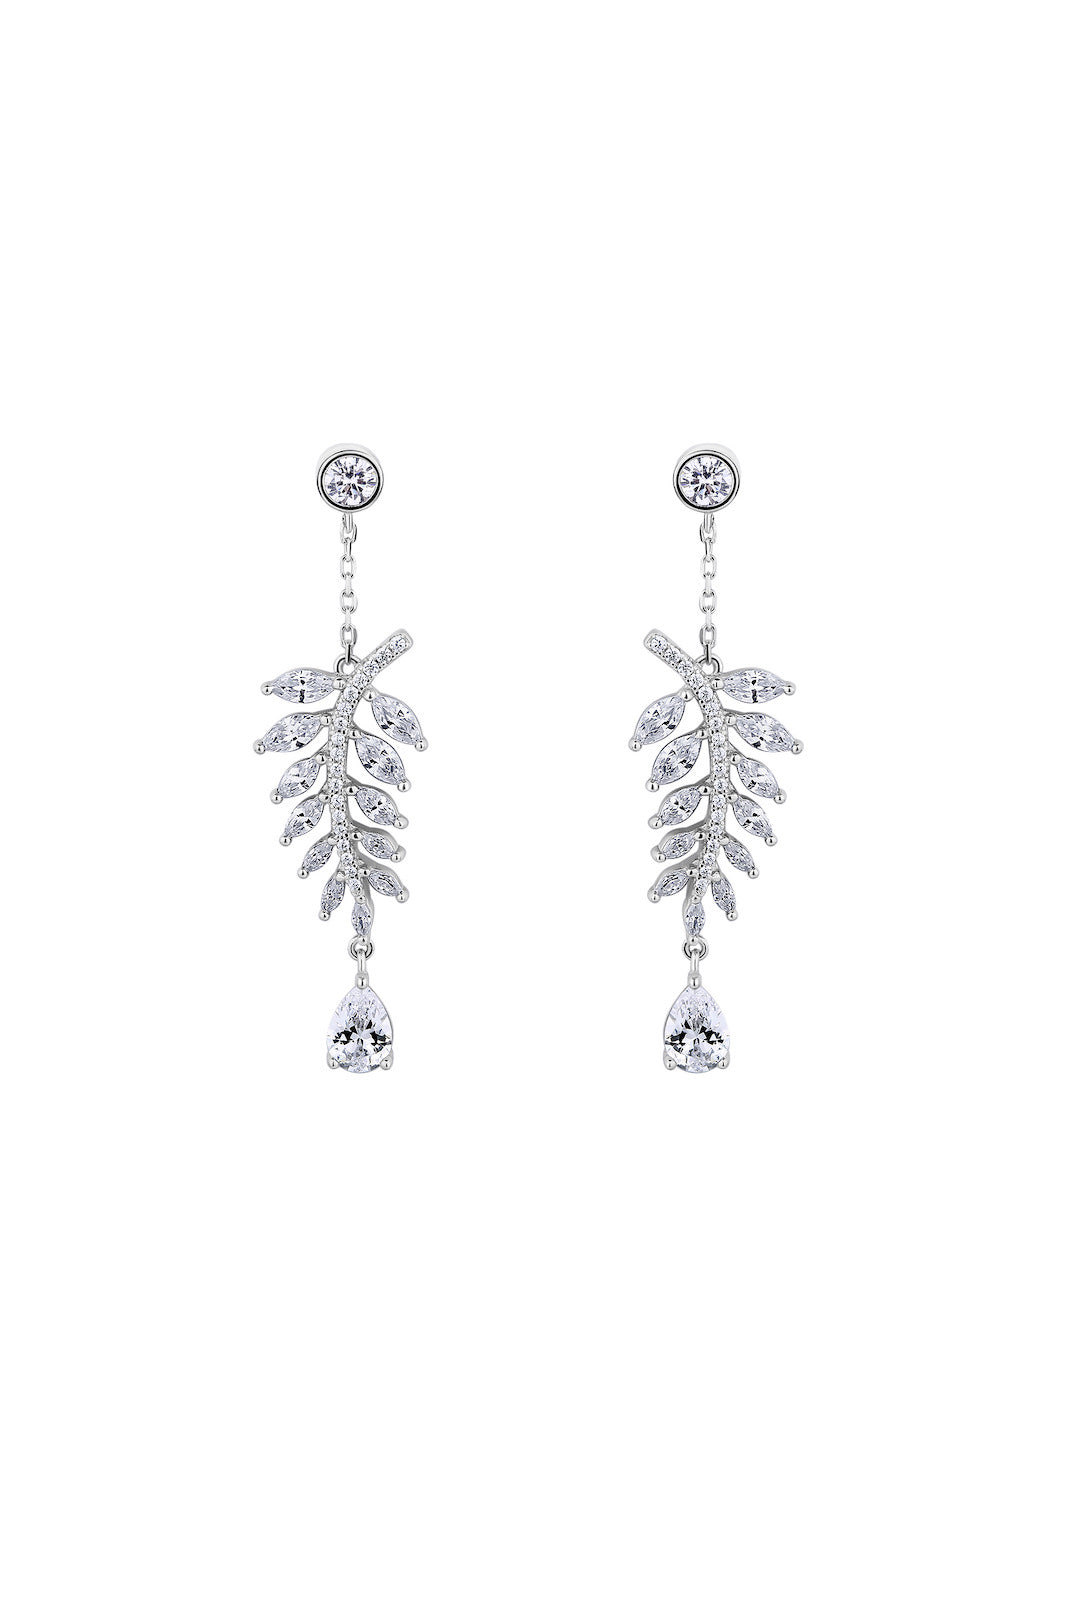 Falling Leaves White Sparkle Silver Drop Earrings